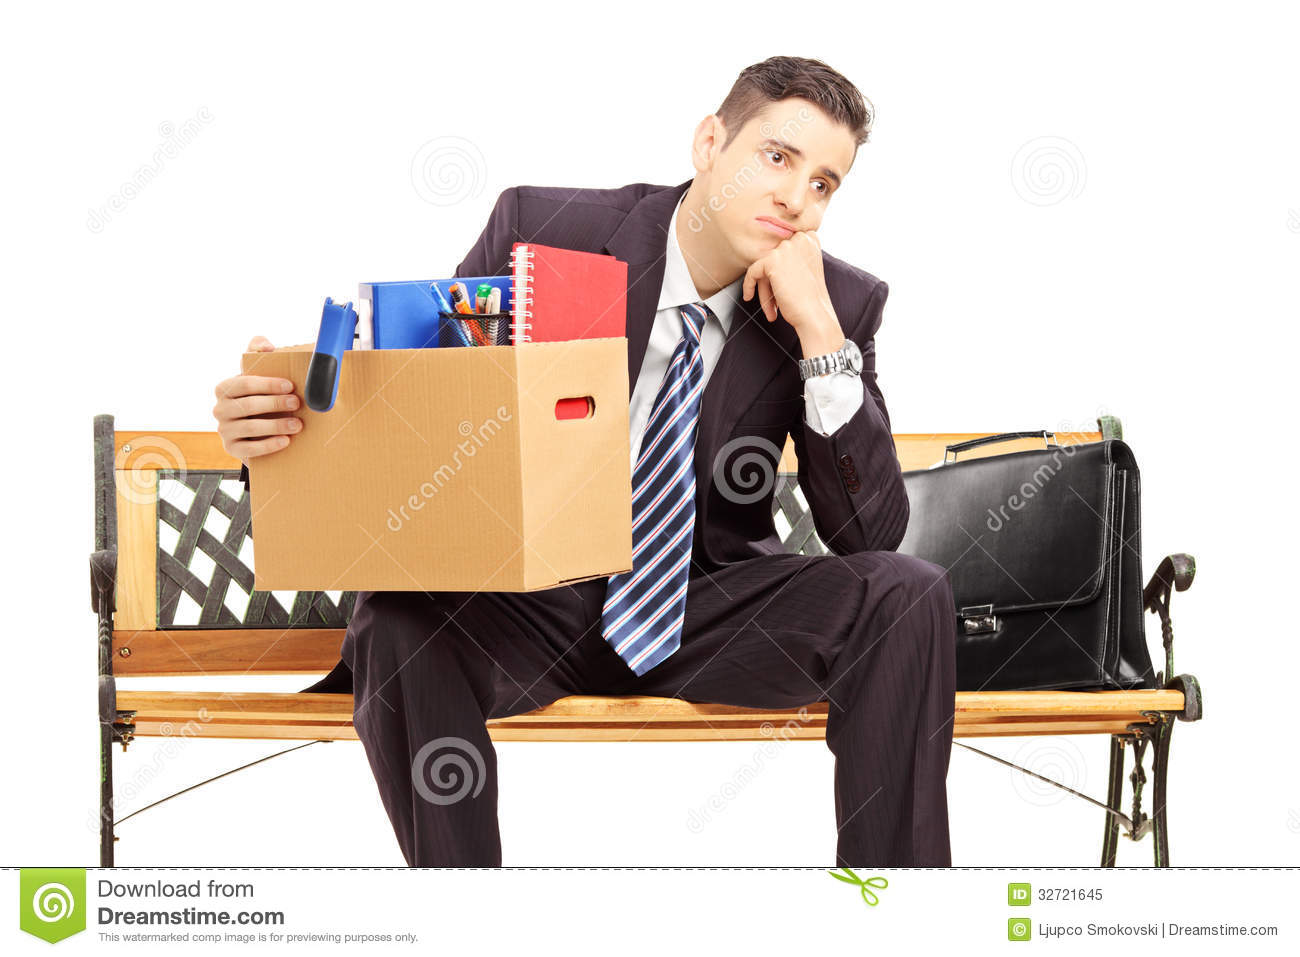 Disappointed Redundant Young Man In A Suit Sitting On A